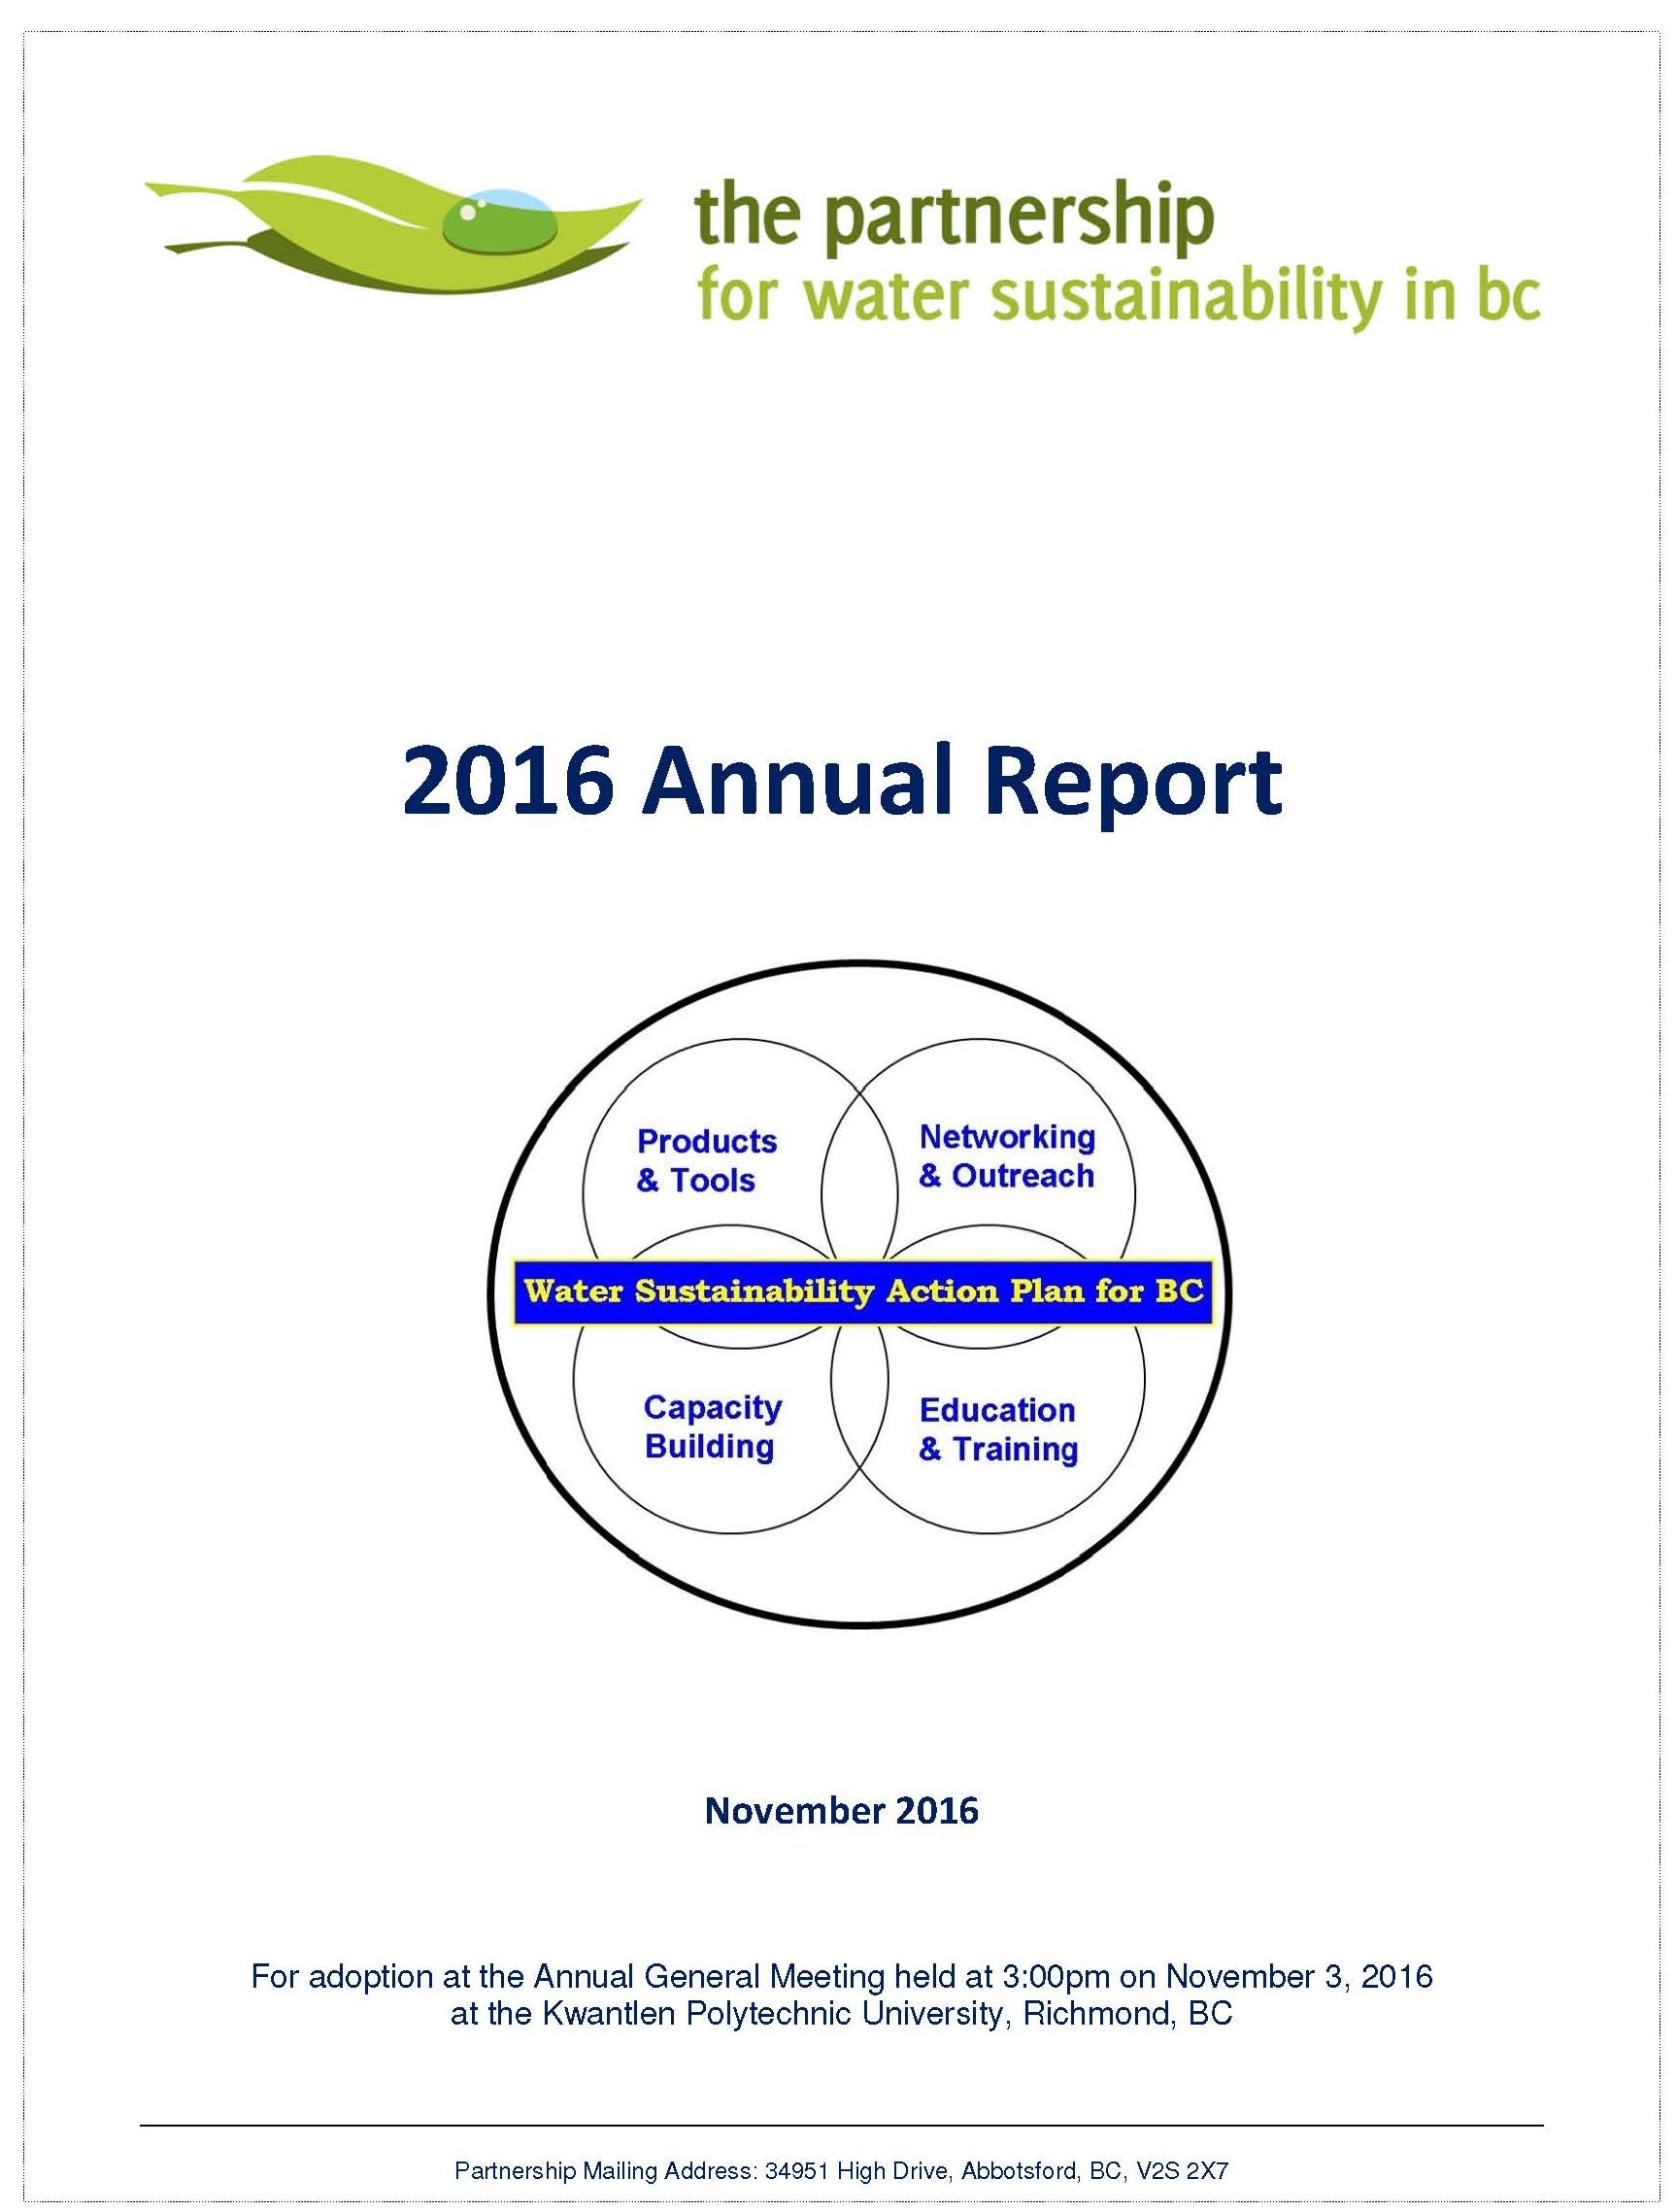 pwsbc_2016-annual-report_cover